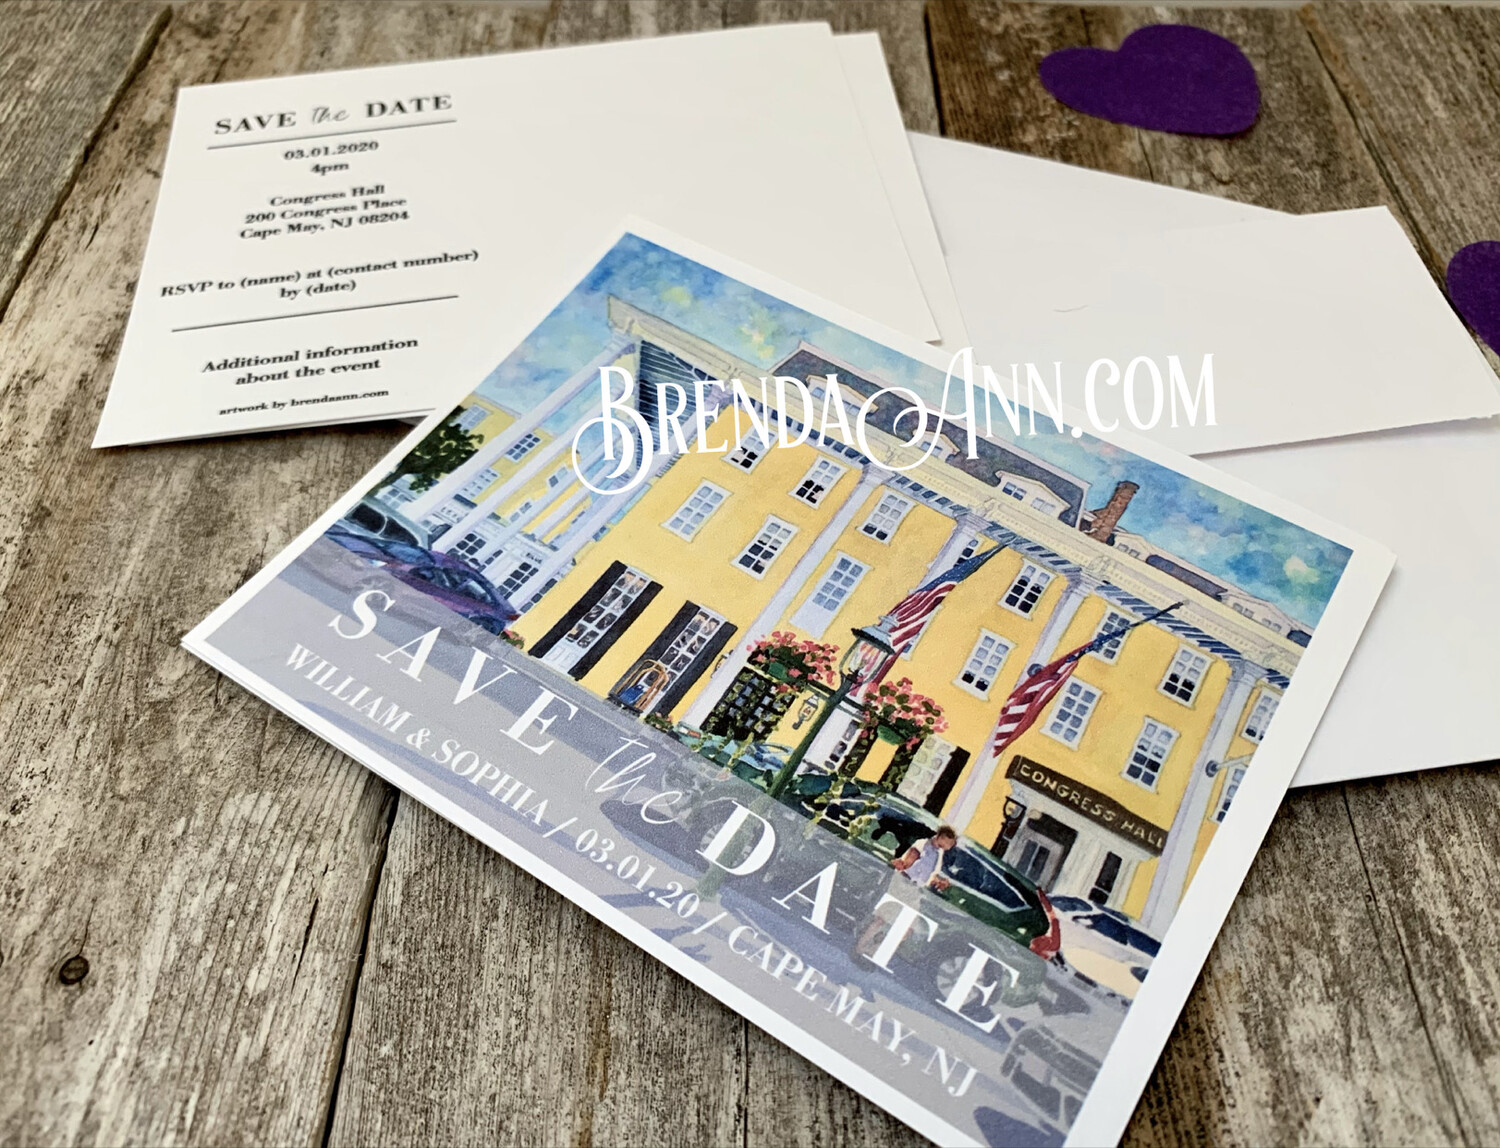 Wedding Save the Date Cards - Congress Hall in Cape May NJ - Watercolor by Brenda Ann